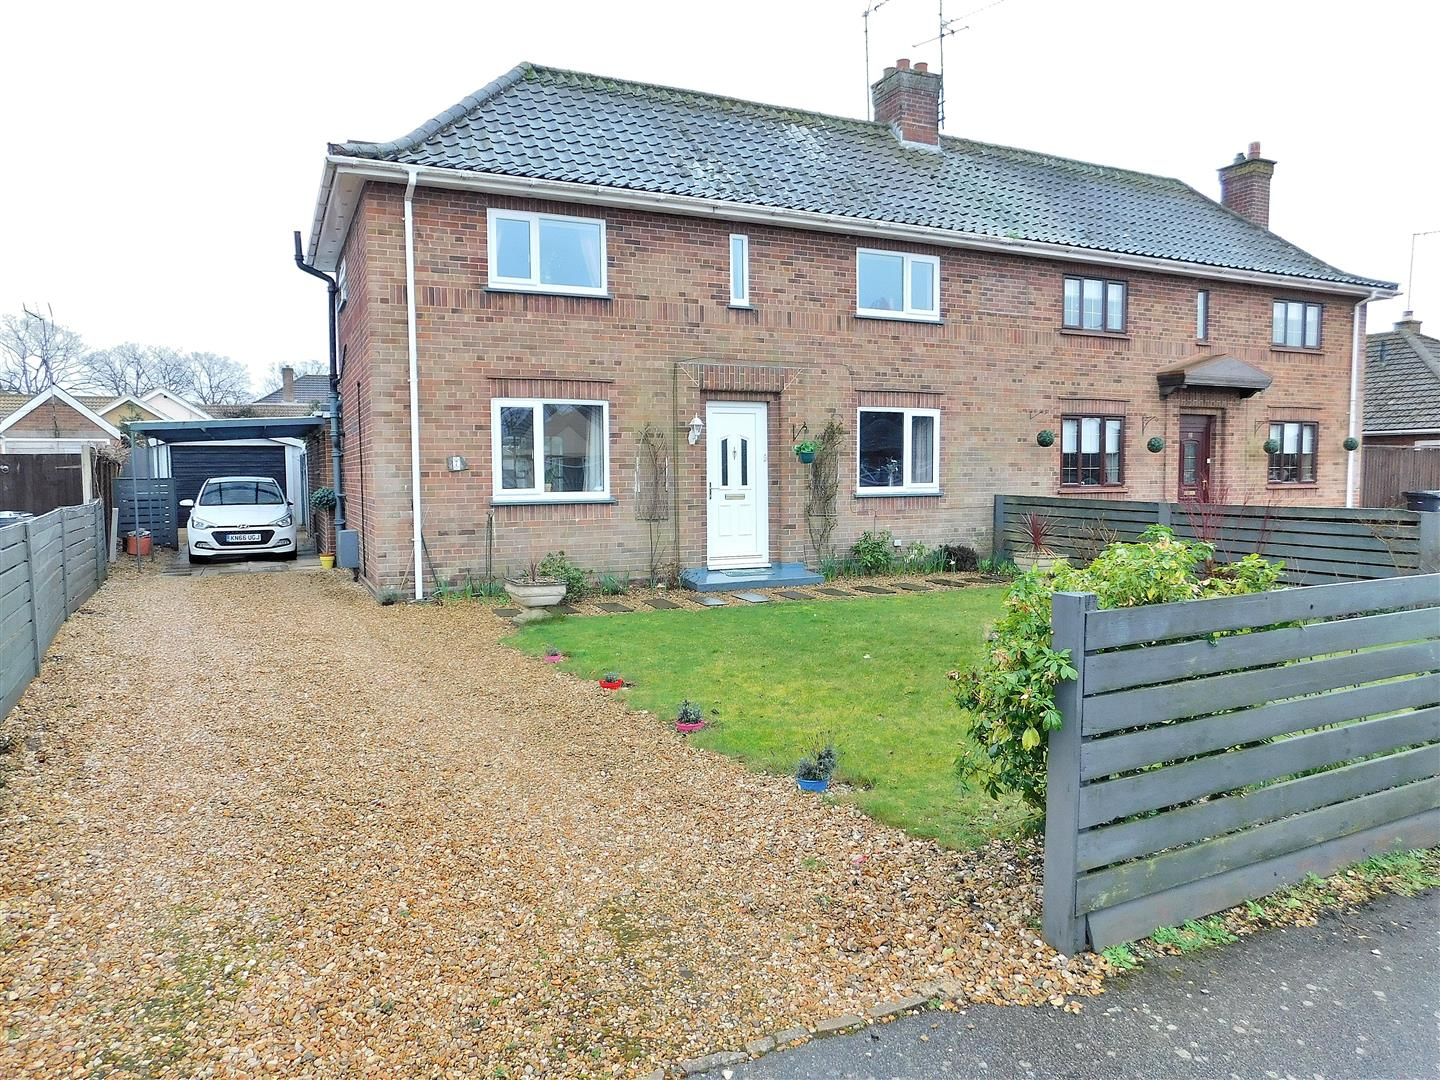 3 bed semi-detached house for sale in King's Lynn, PE30 3BU, PE30